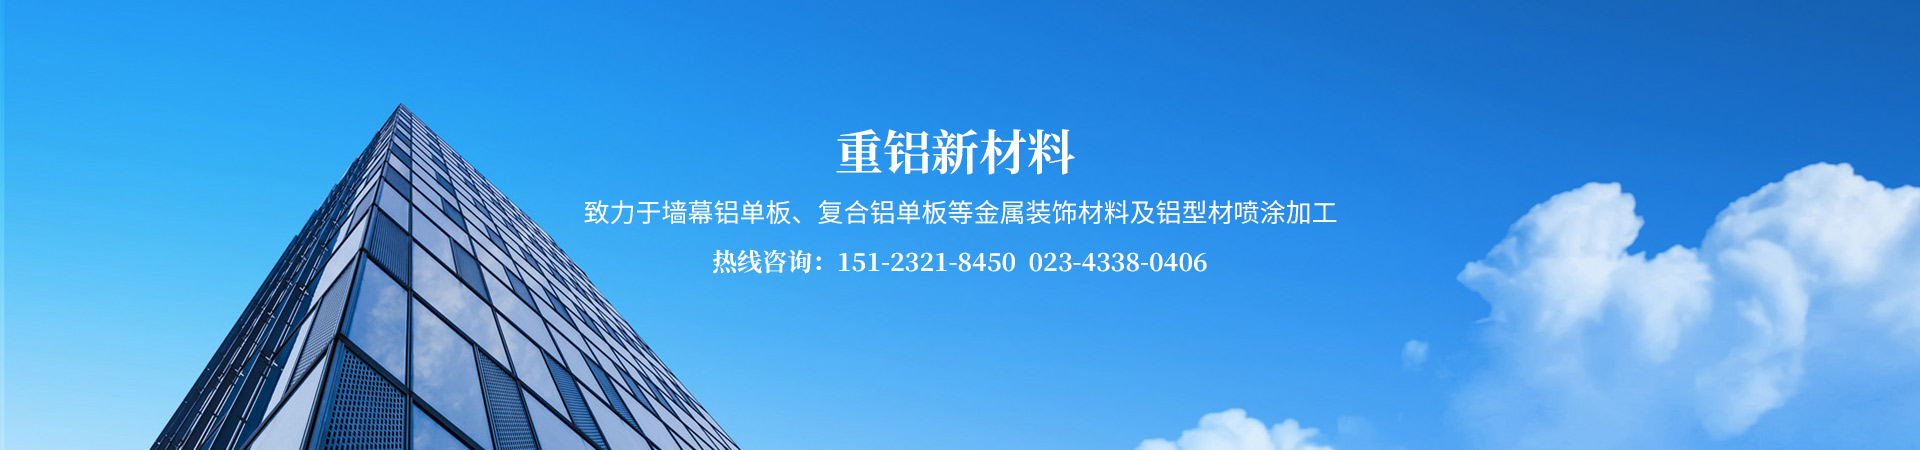 http://www.cqchonglv.cn/data/upload/202010/20201015101258_637.jpg